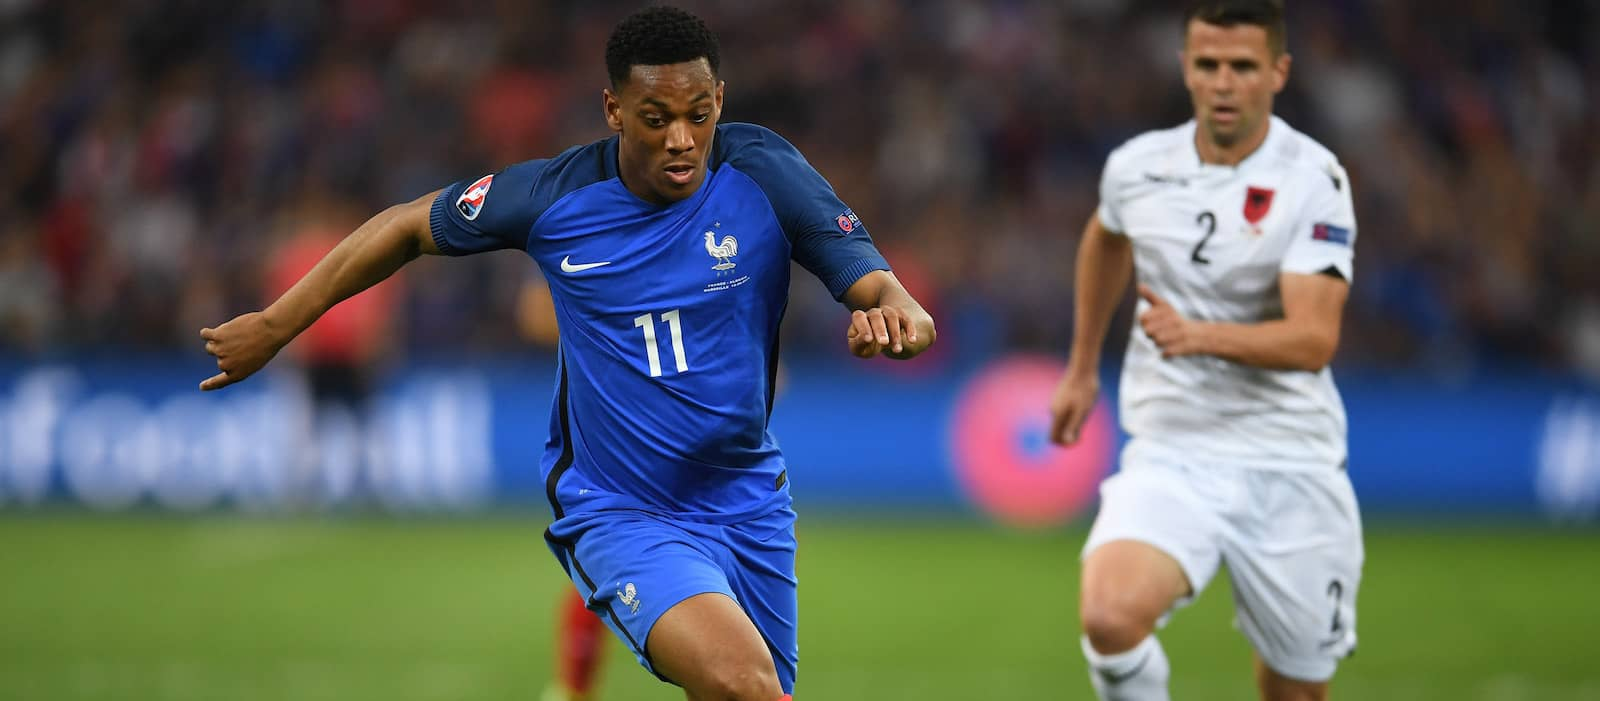 Manchester United fans react to Anthony Martial's performance for France